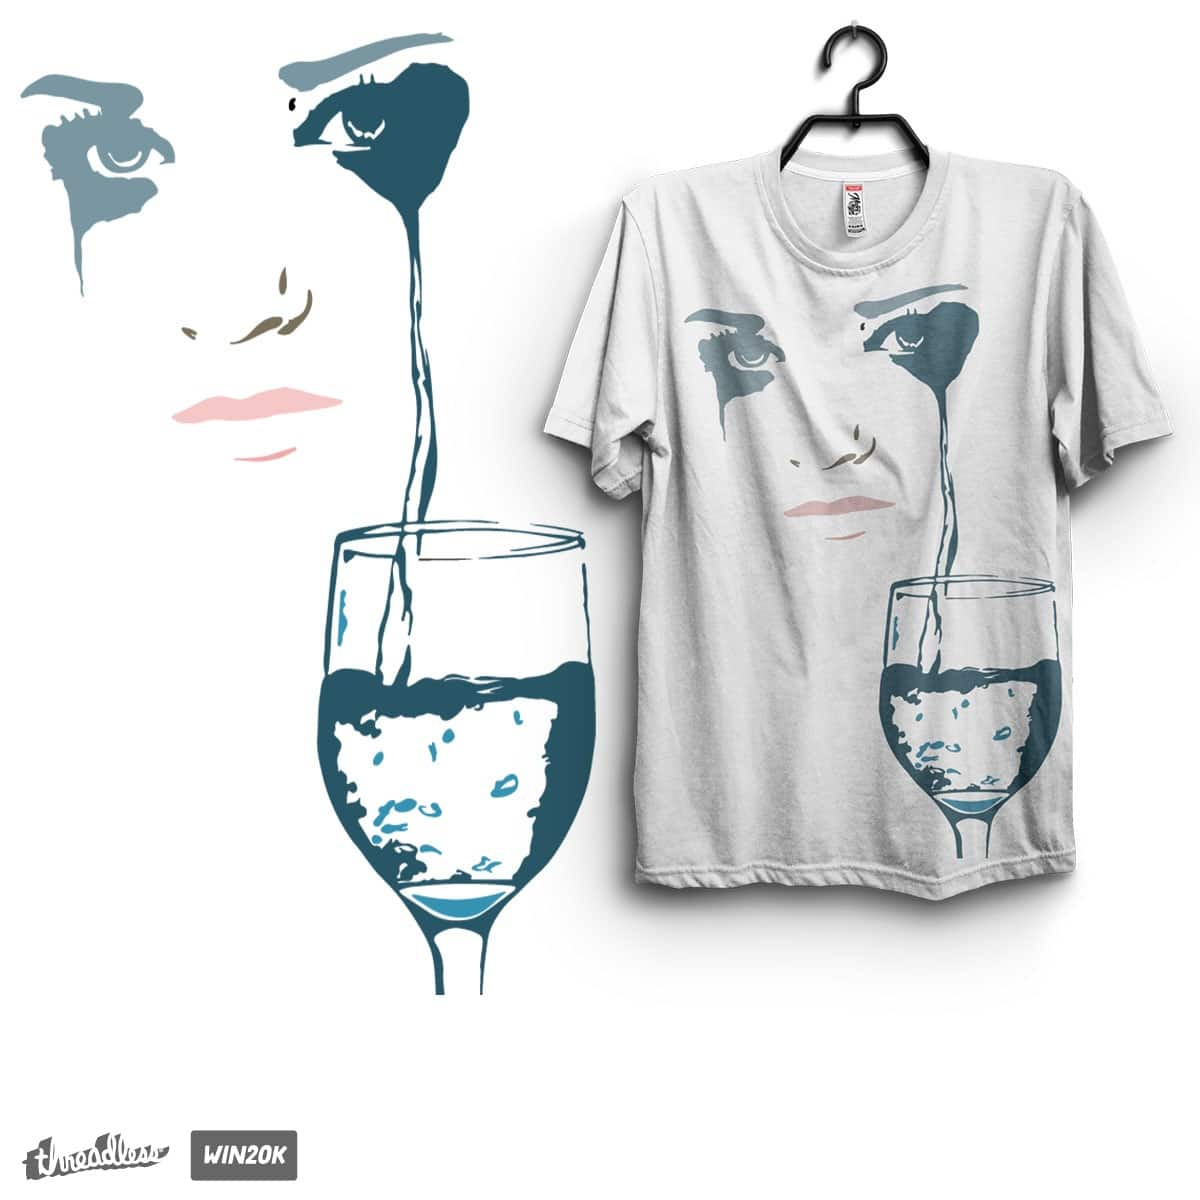 A woman sad by sigoisette on Threadless